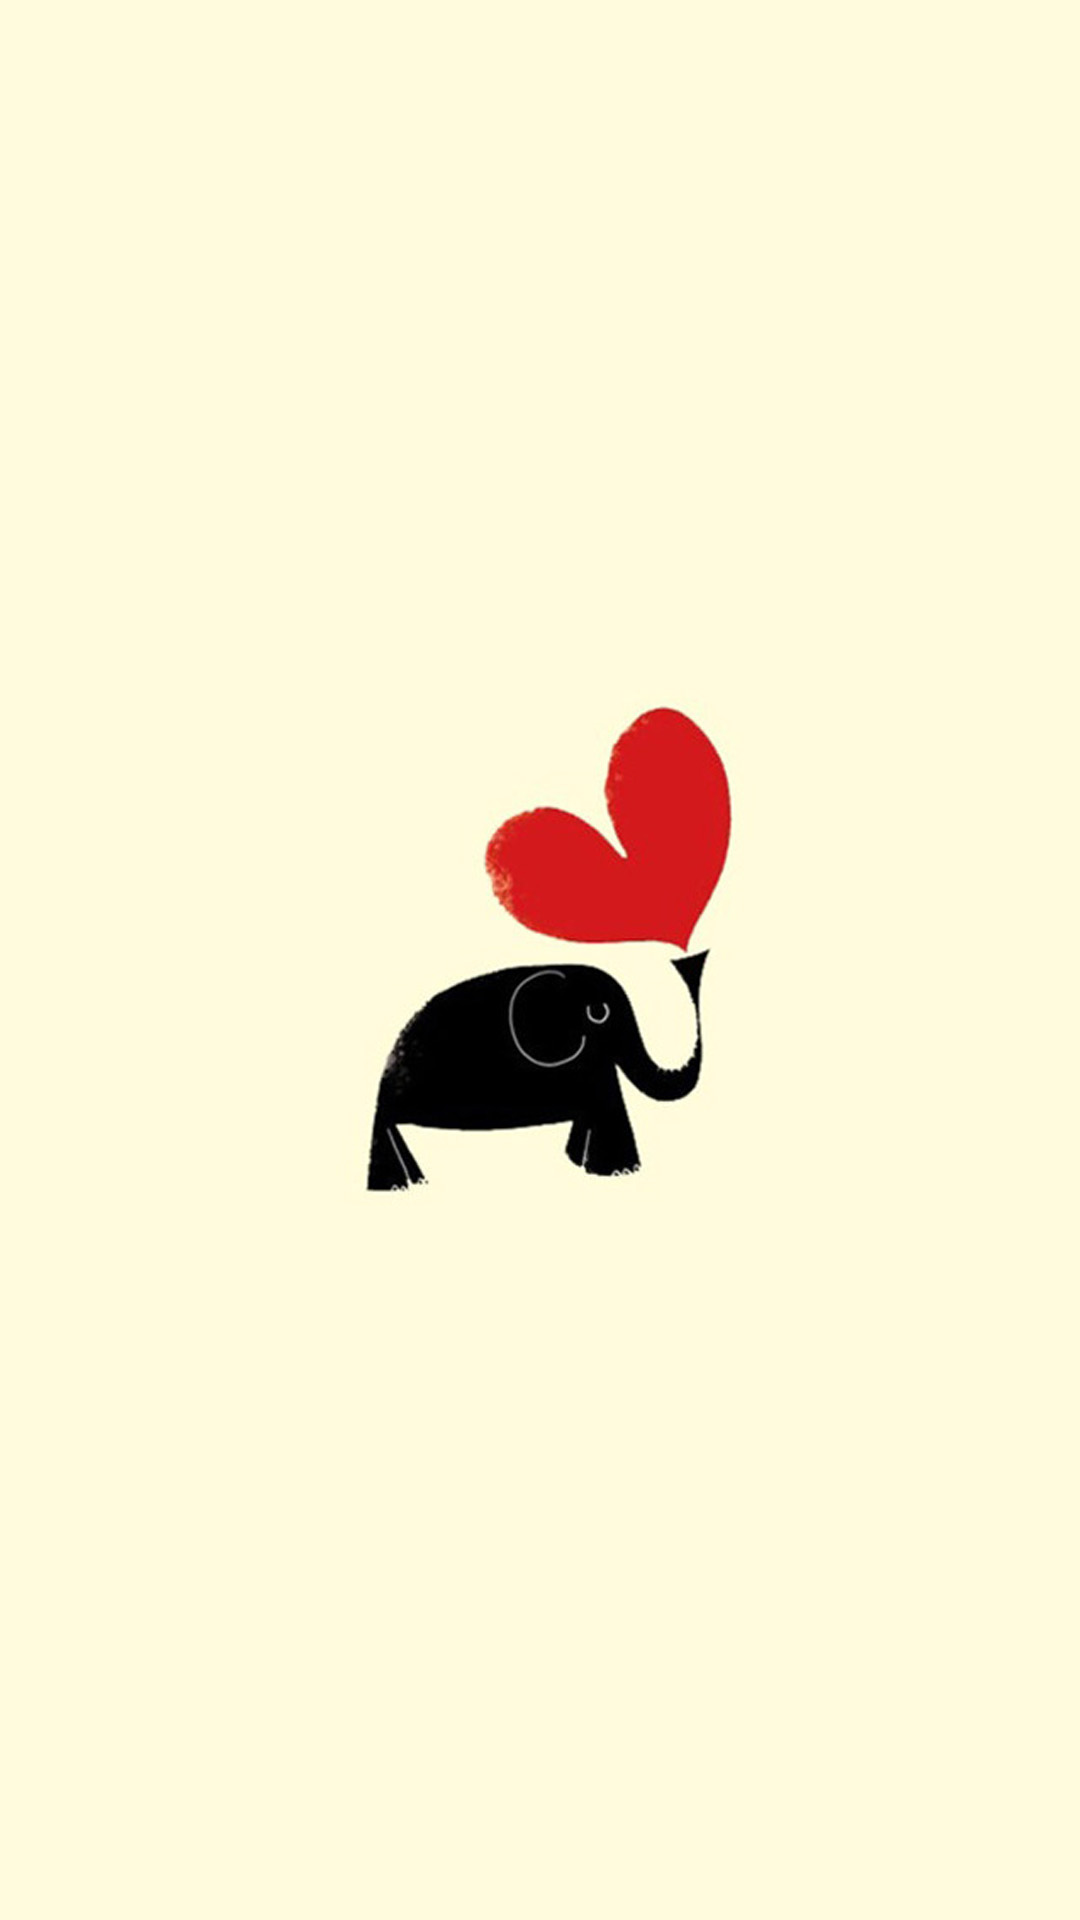 Cute Little Dark Elephant Red Love Heart Drawn Art